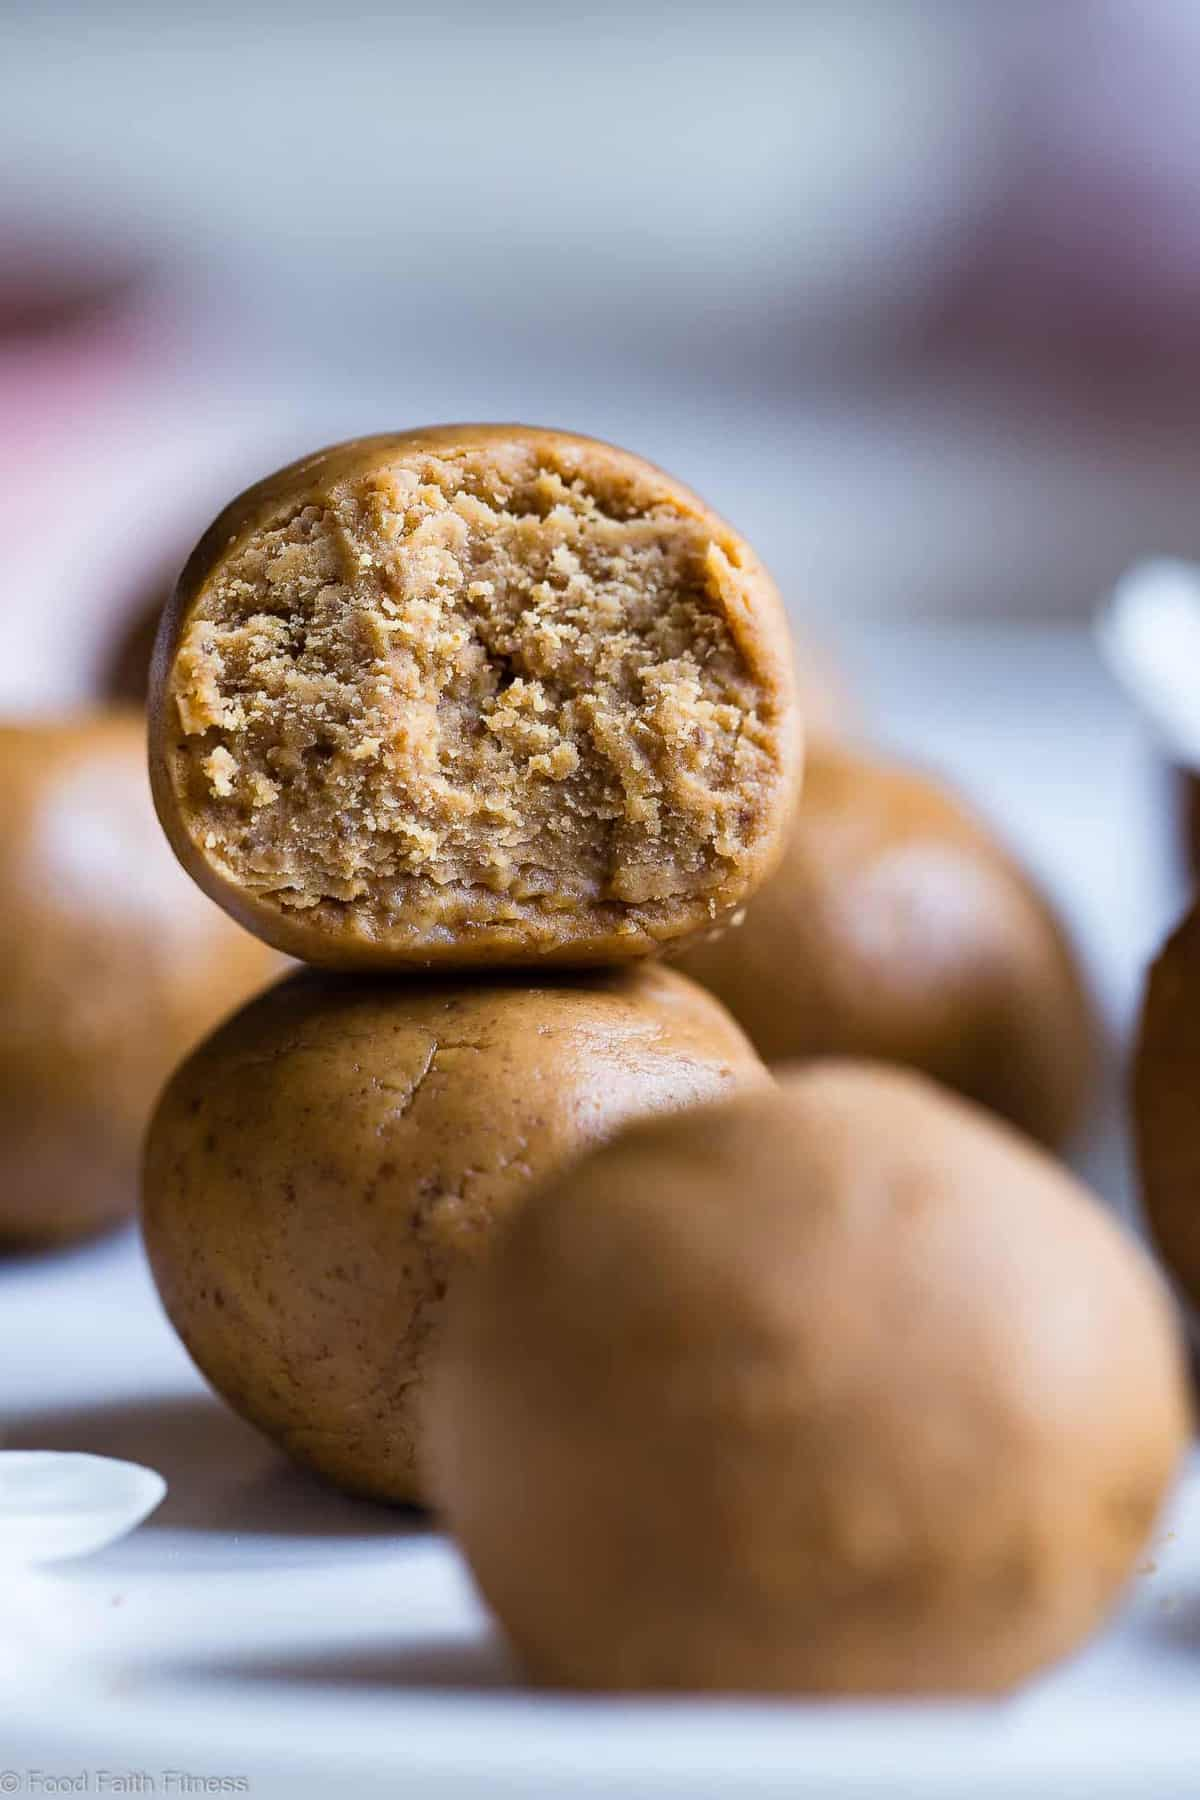 Peanut Butter Protein Cookie Dough Bites - This easy recipe is only 4 ingredients and take 10 mins! Gluten free, dairy free and PACKED with protein too! A healthy snack for kids or adults! | #Foodfaithfitness | #Glutenfree #Dairyfree #PeanutButter #Healthy #CookieDough